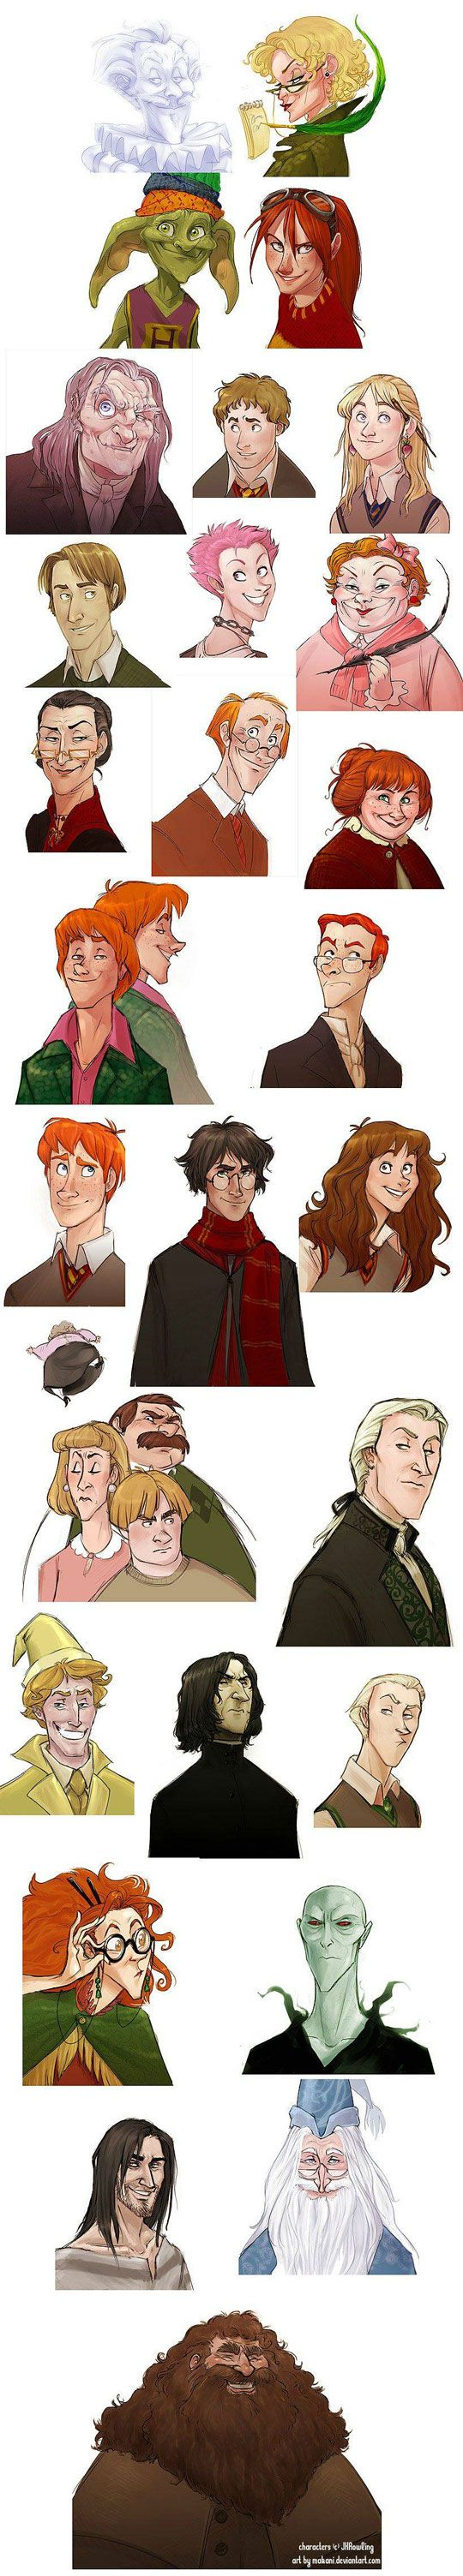 If Disney made Harry Potter movies!!! << love this person's art design! Can't remember her name at the moment but she is brilliant!